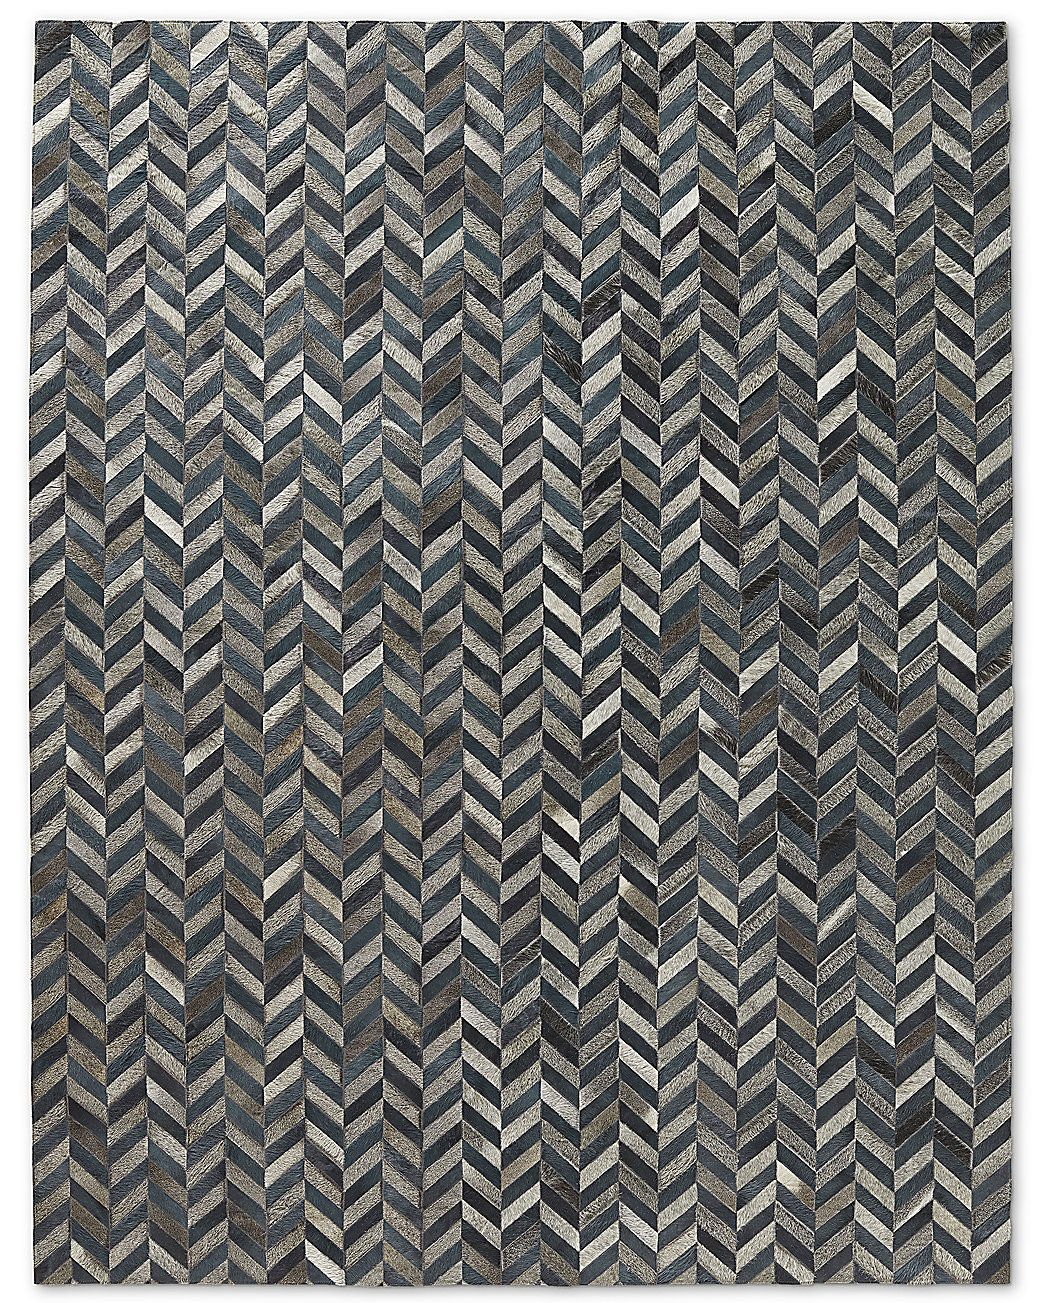 HIDES TRENDS PAGE: Chevron Cowhide Rug - Blue Grey